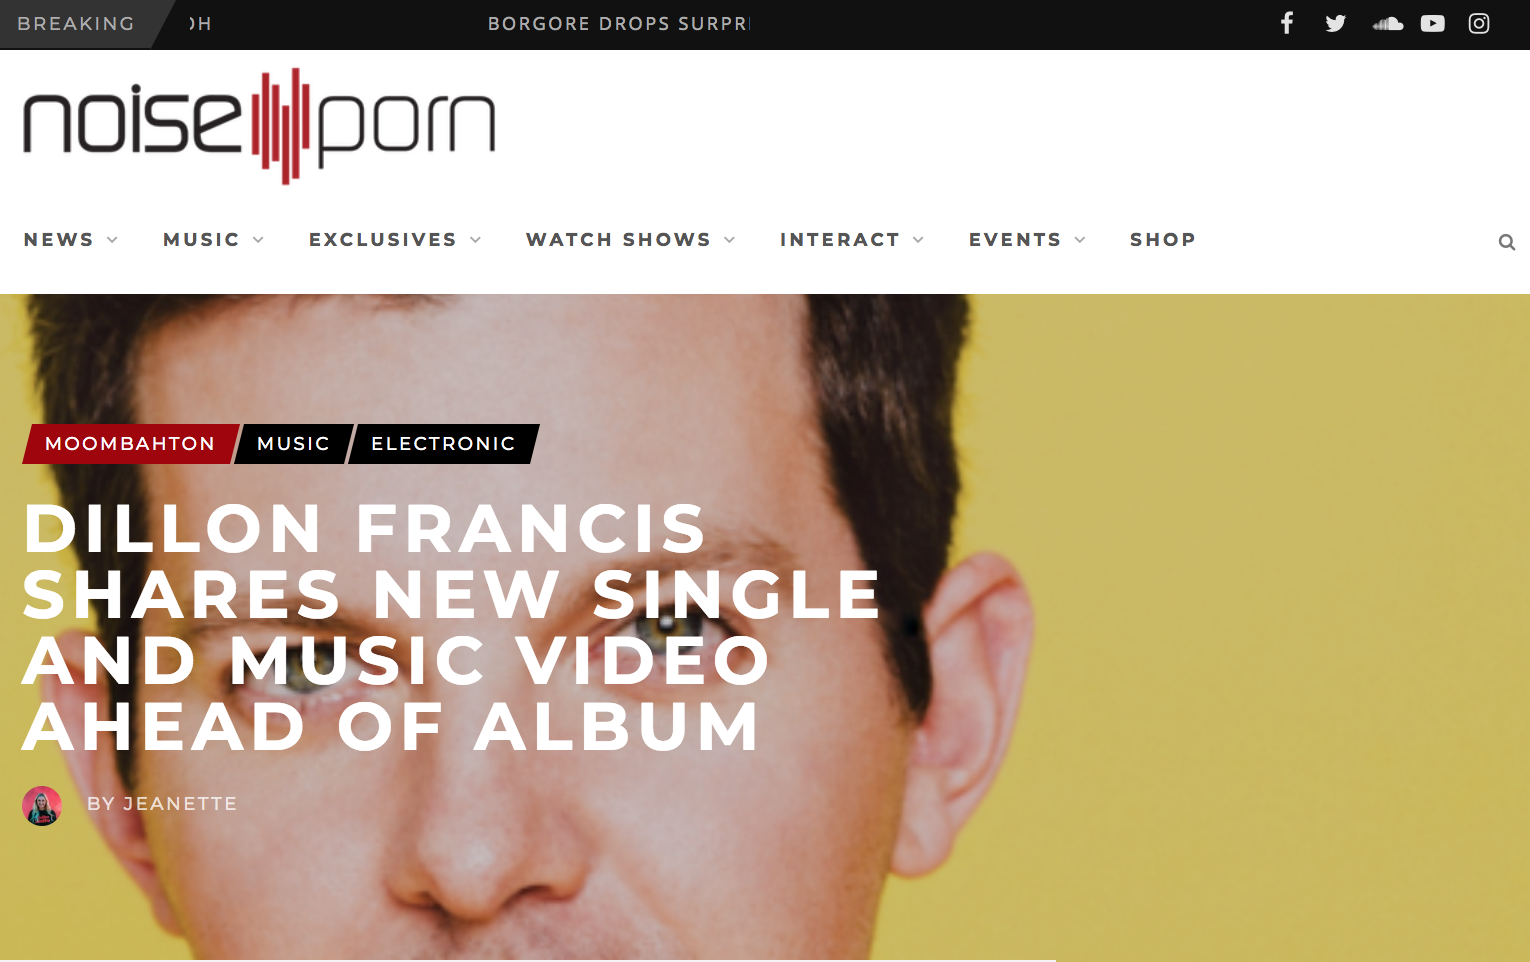 DILLON FRANCIS SHARES NEW SINGLE AND MUSIC VIDEO AHEAD OF ALBUM